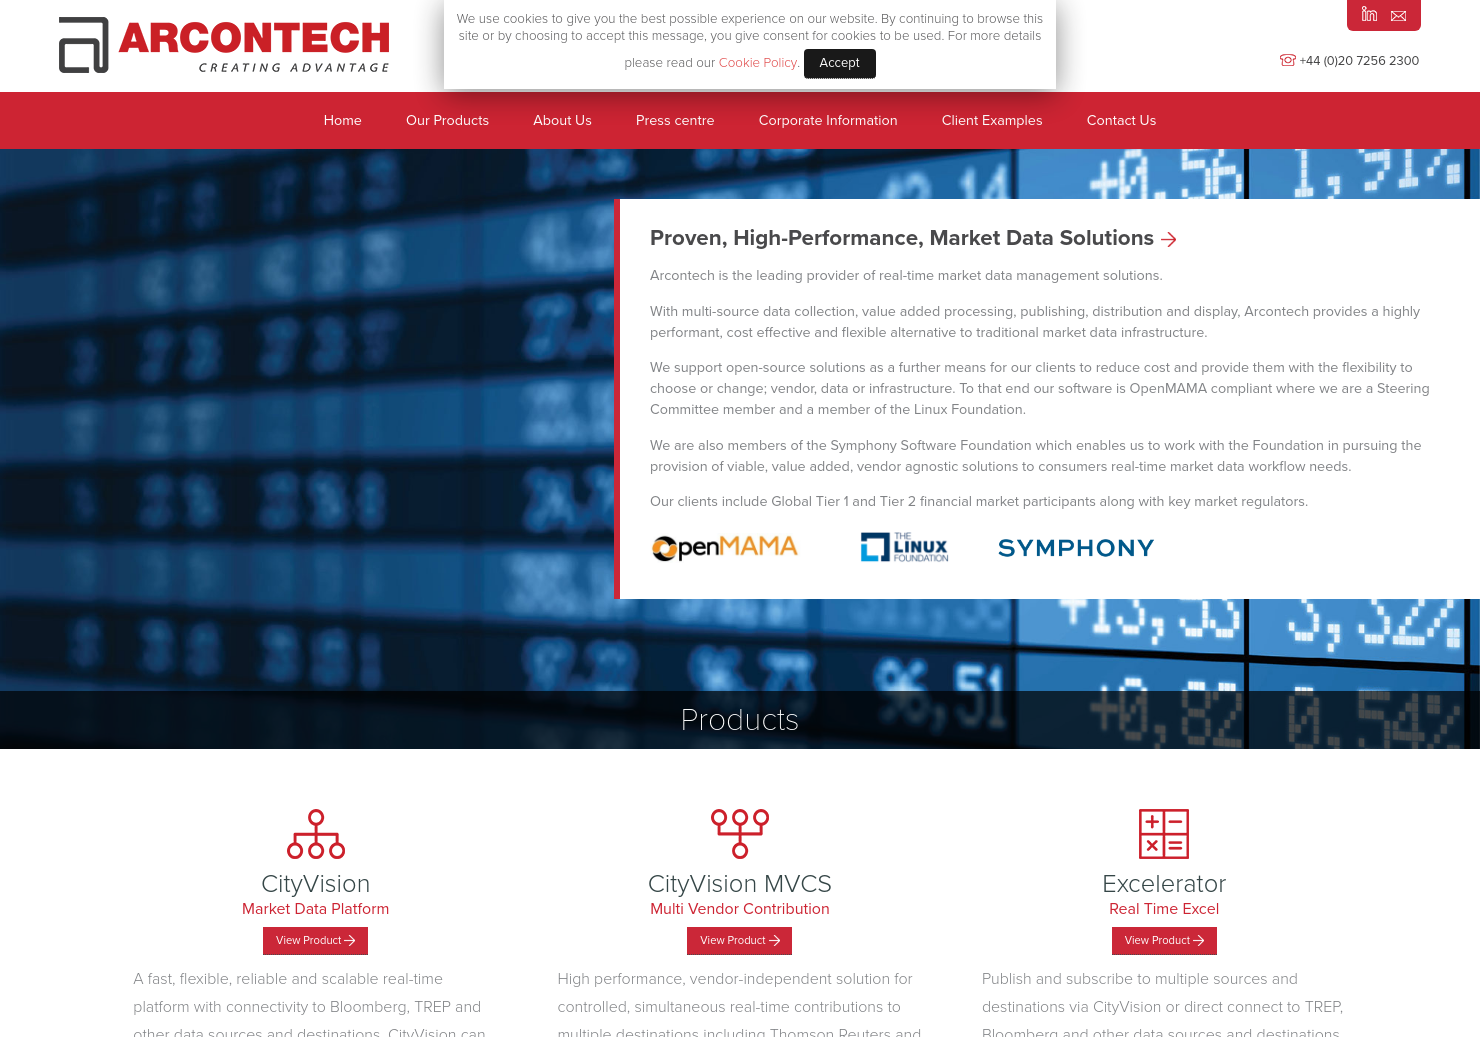 Arcontech Group Home Page